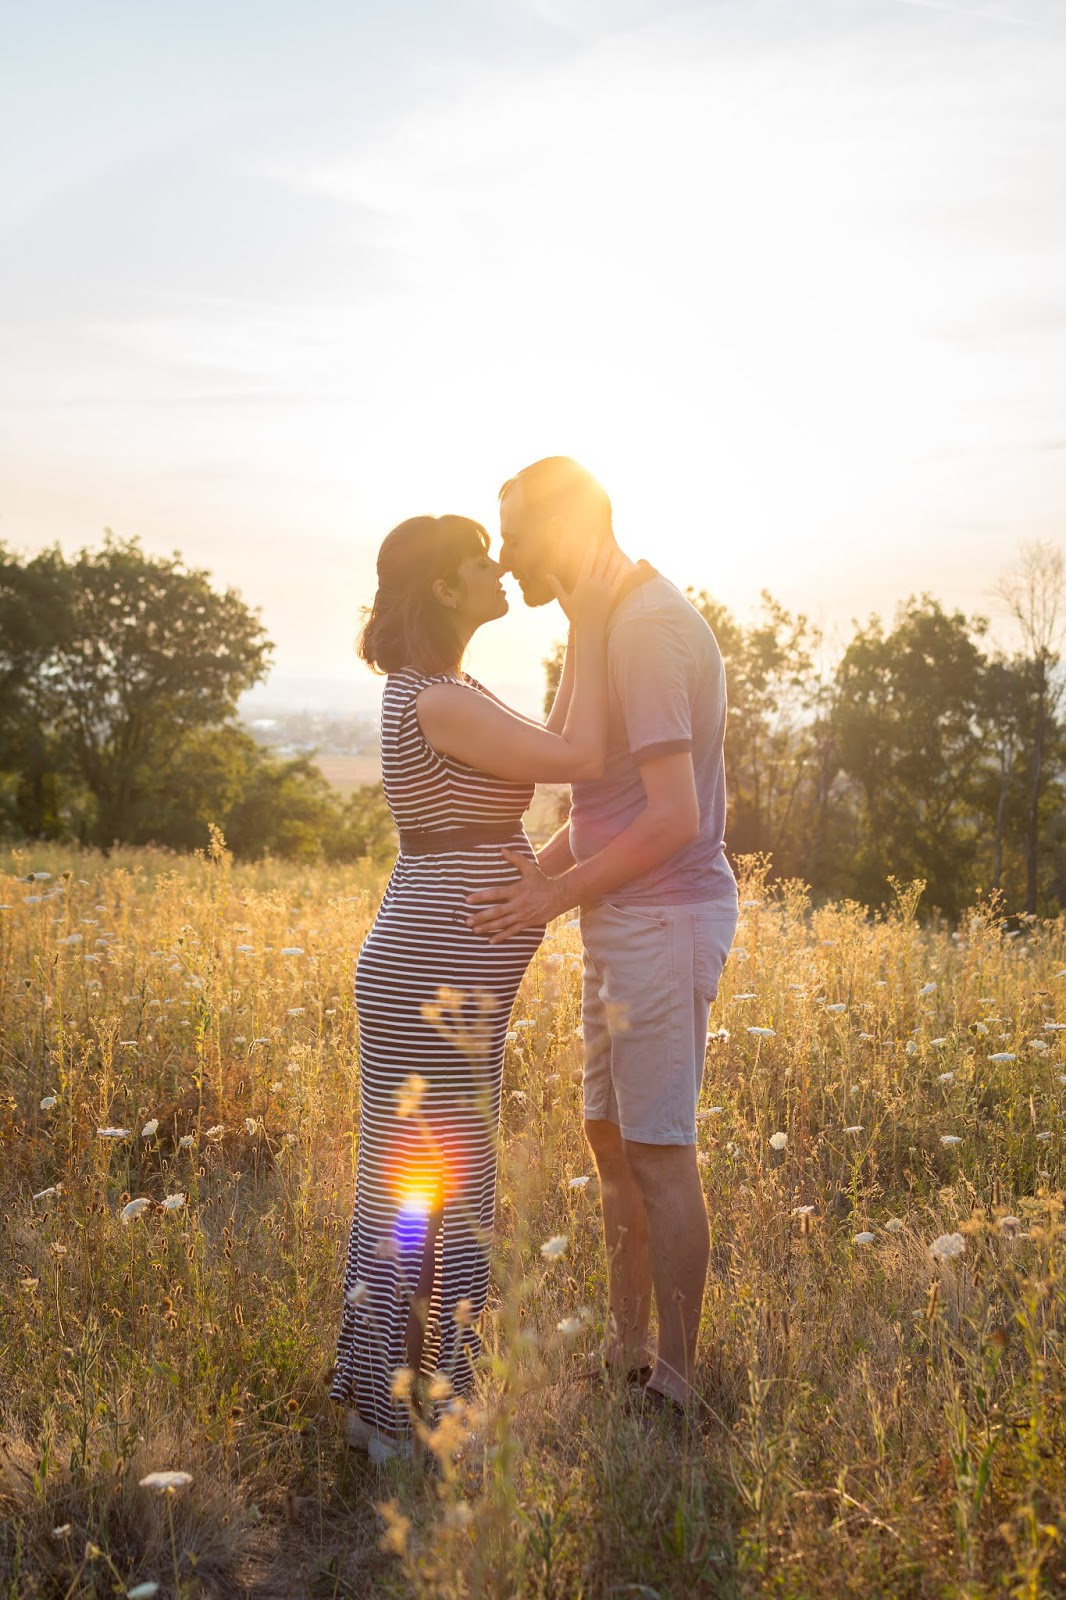 Shooting photos de couple proche de Lyon, dans la nature